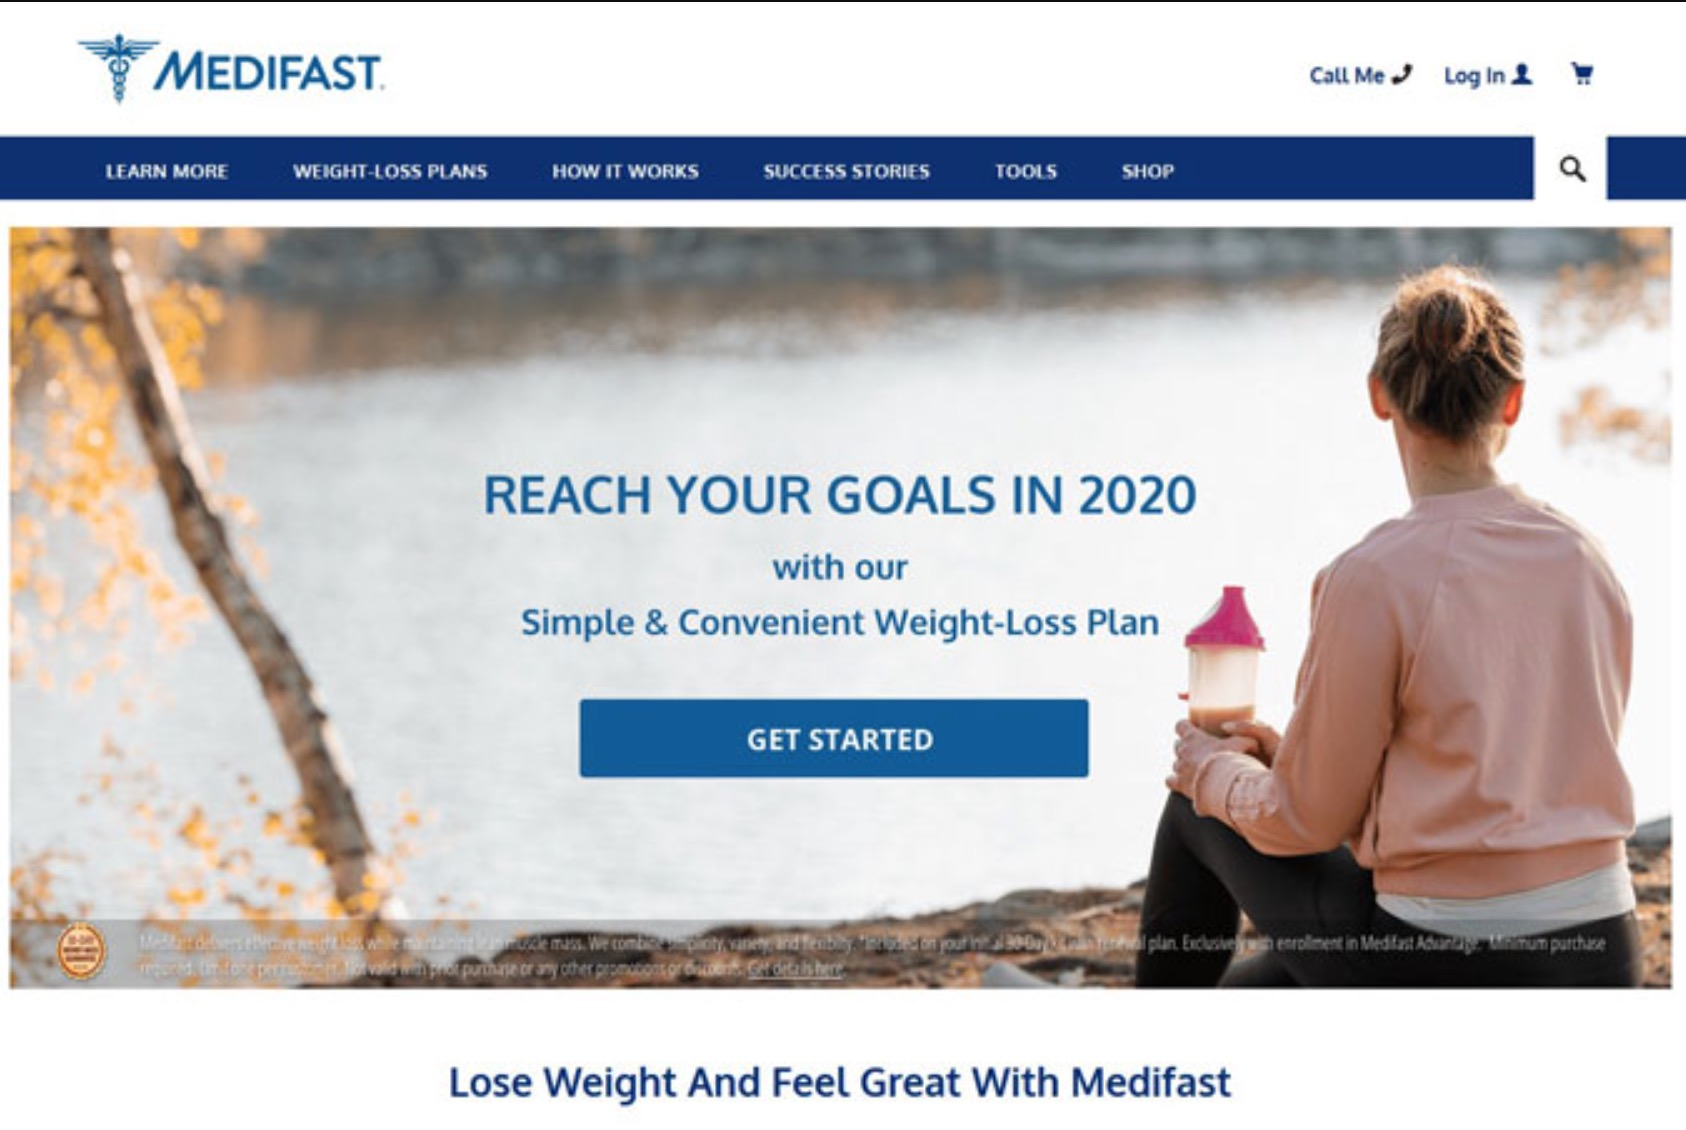 Medifast page